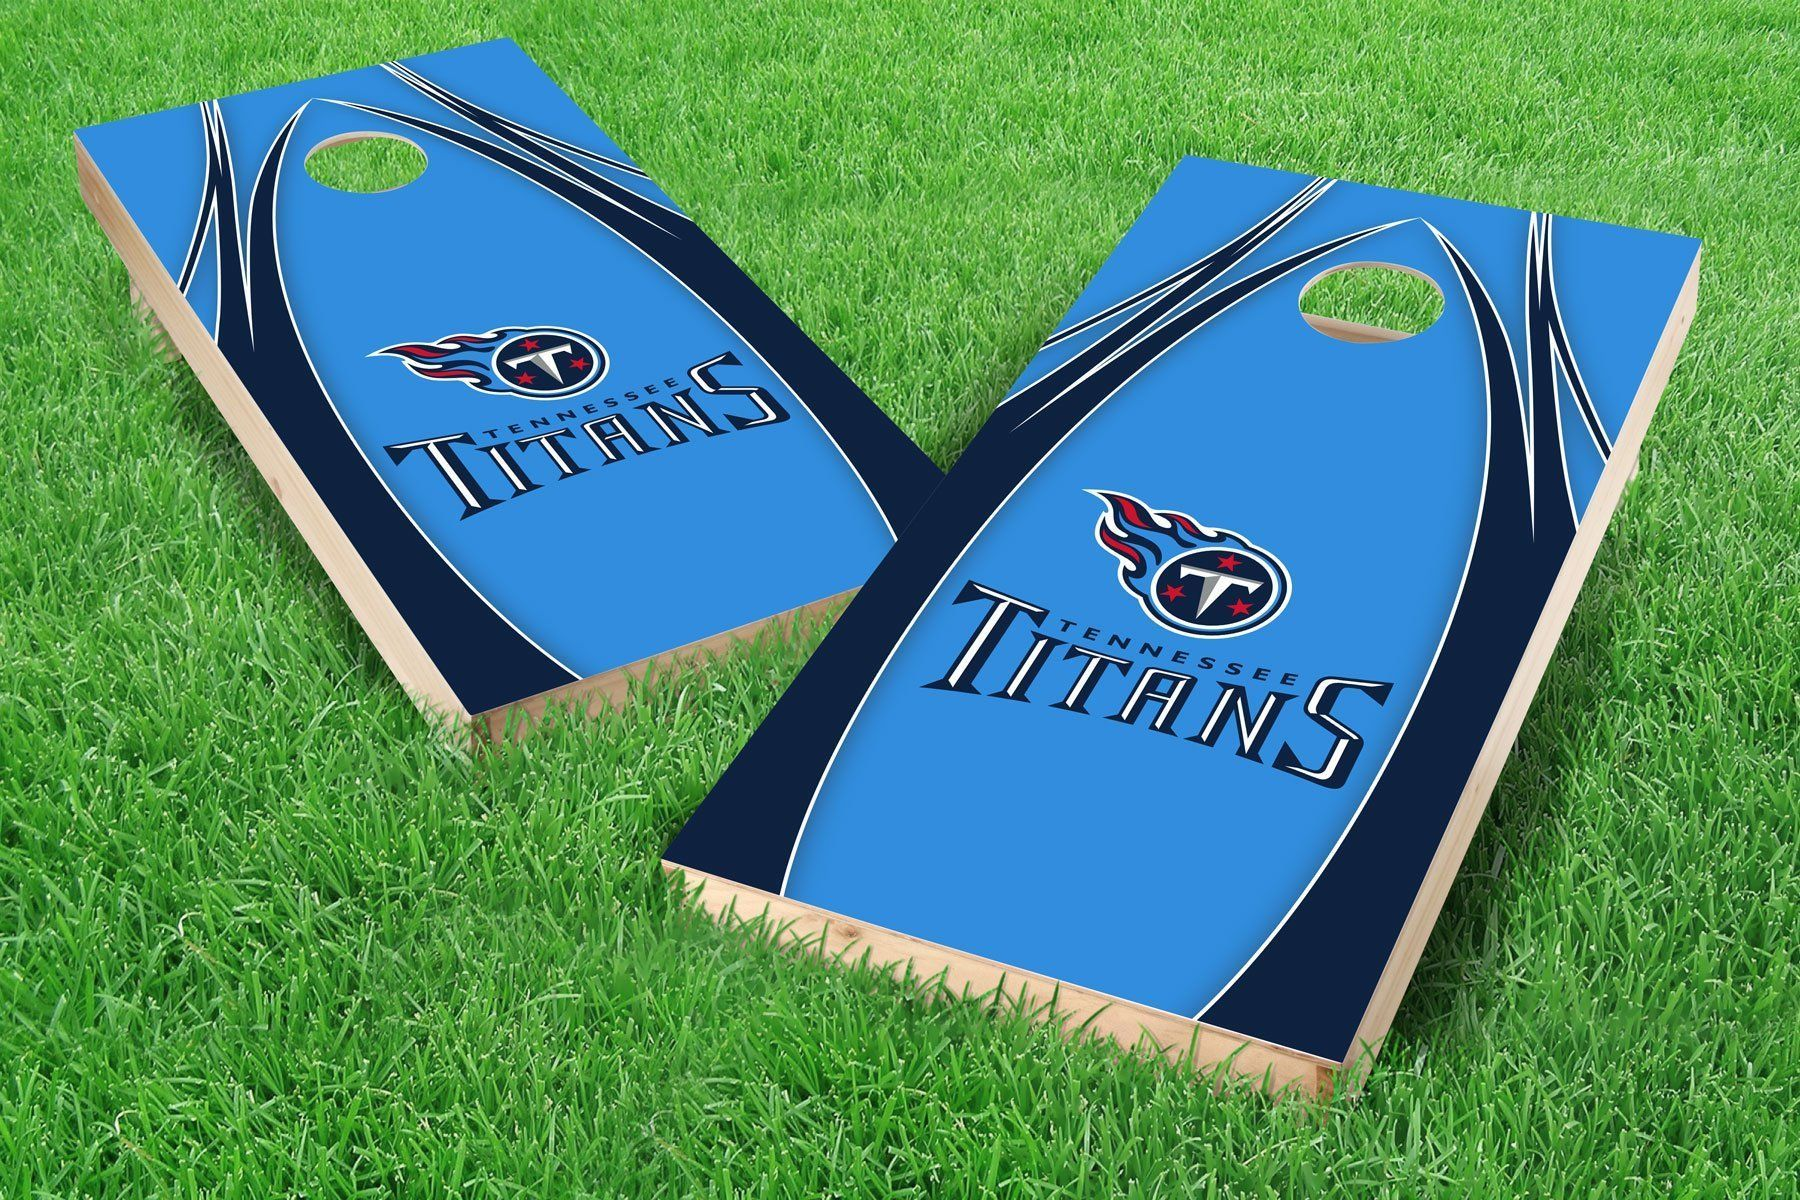 Tennessee Titans State Pride Cornhole Board Set Cornhole Bag Toss Sporting Goods